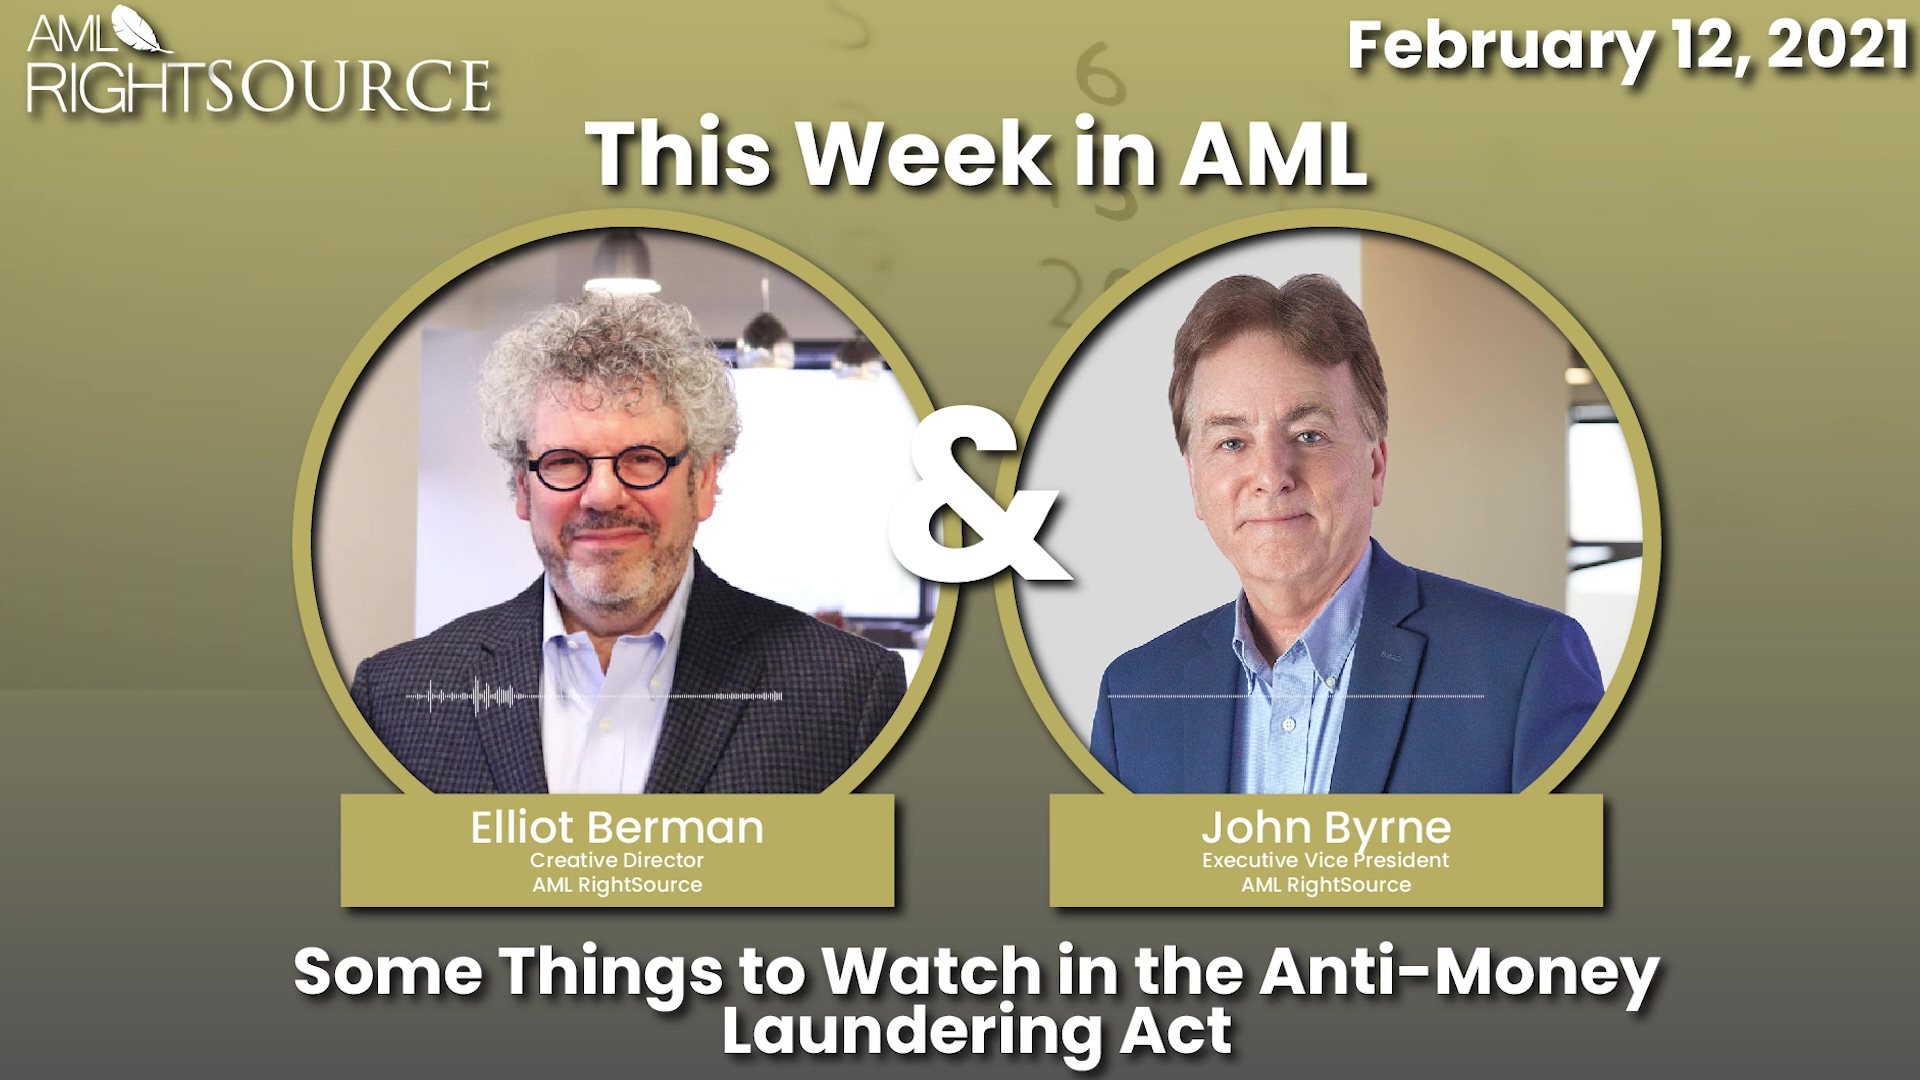 Some Things to Watch in the Anti-Money Laundering Act